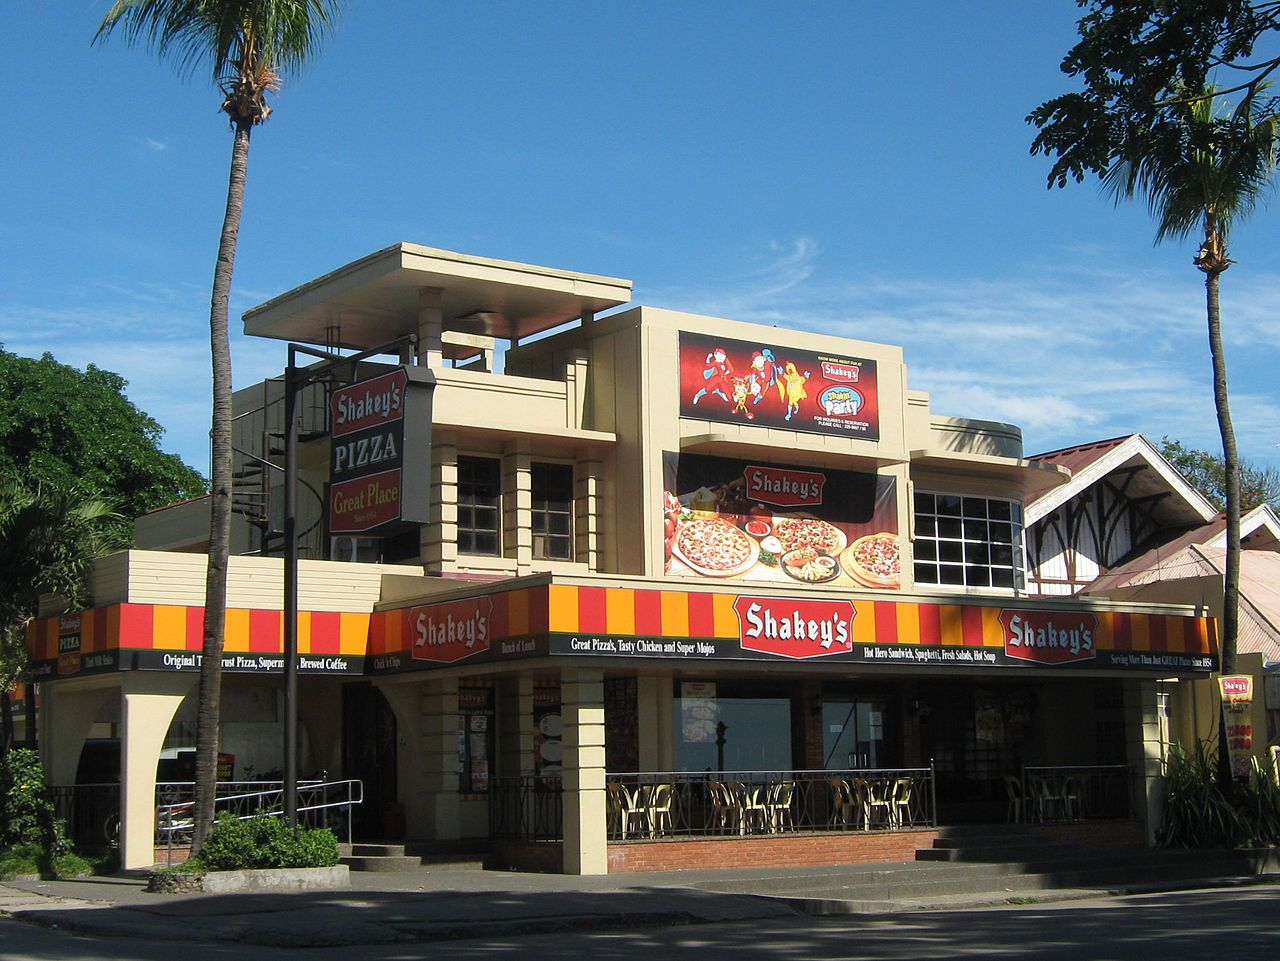 Shakey's Pizza restaurant in Dumaguete City Shakeys